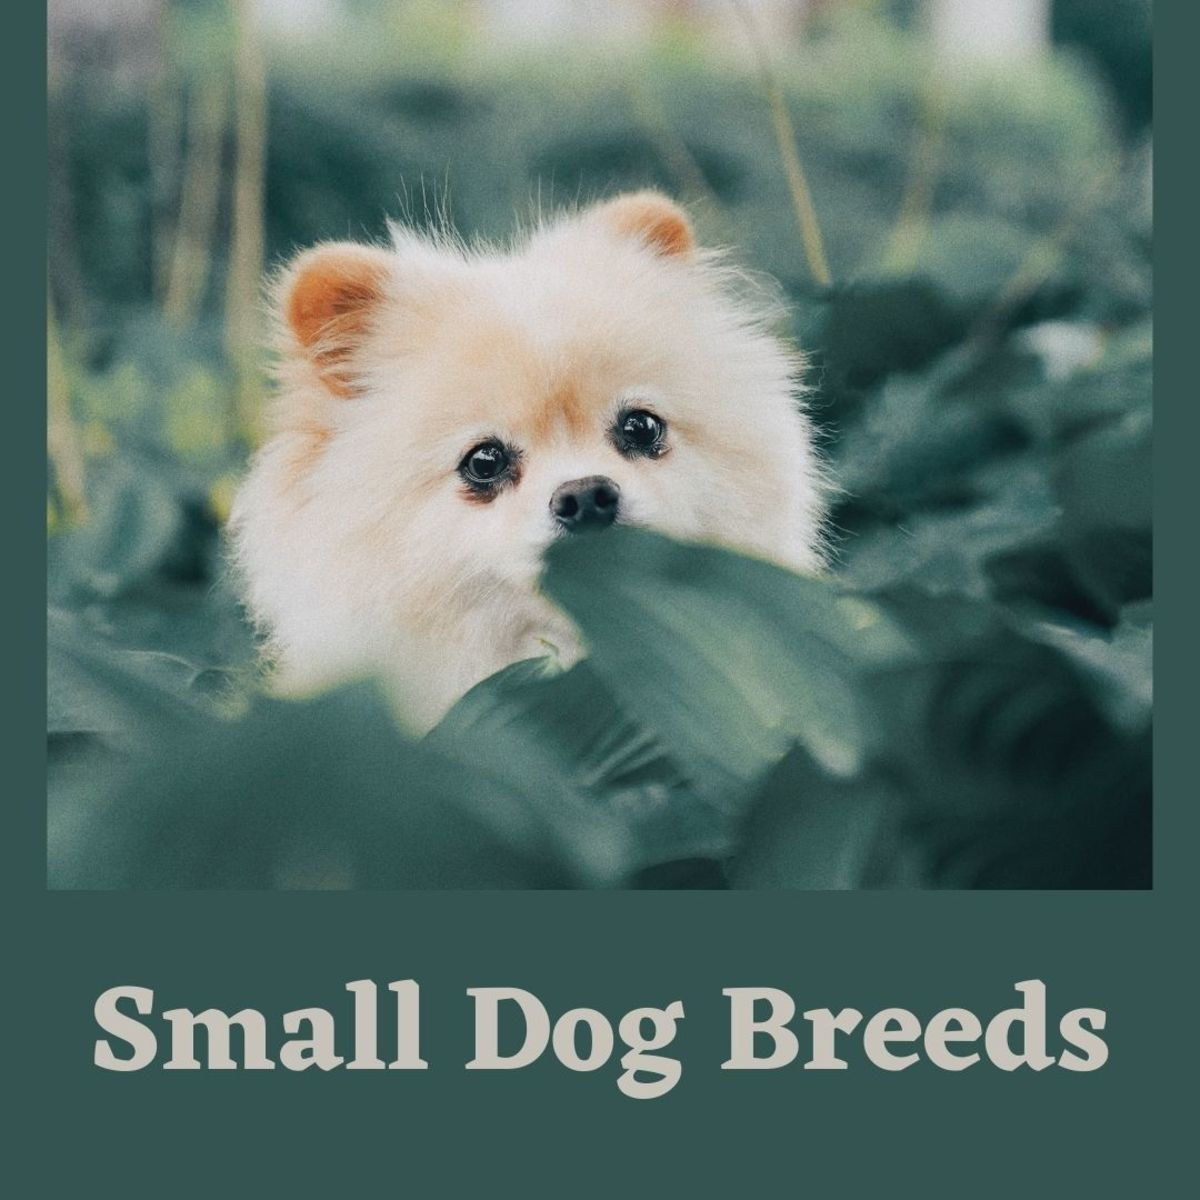 How to Care for Small Dog Breeds